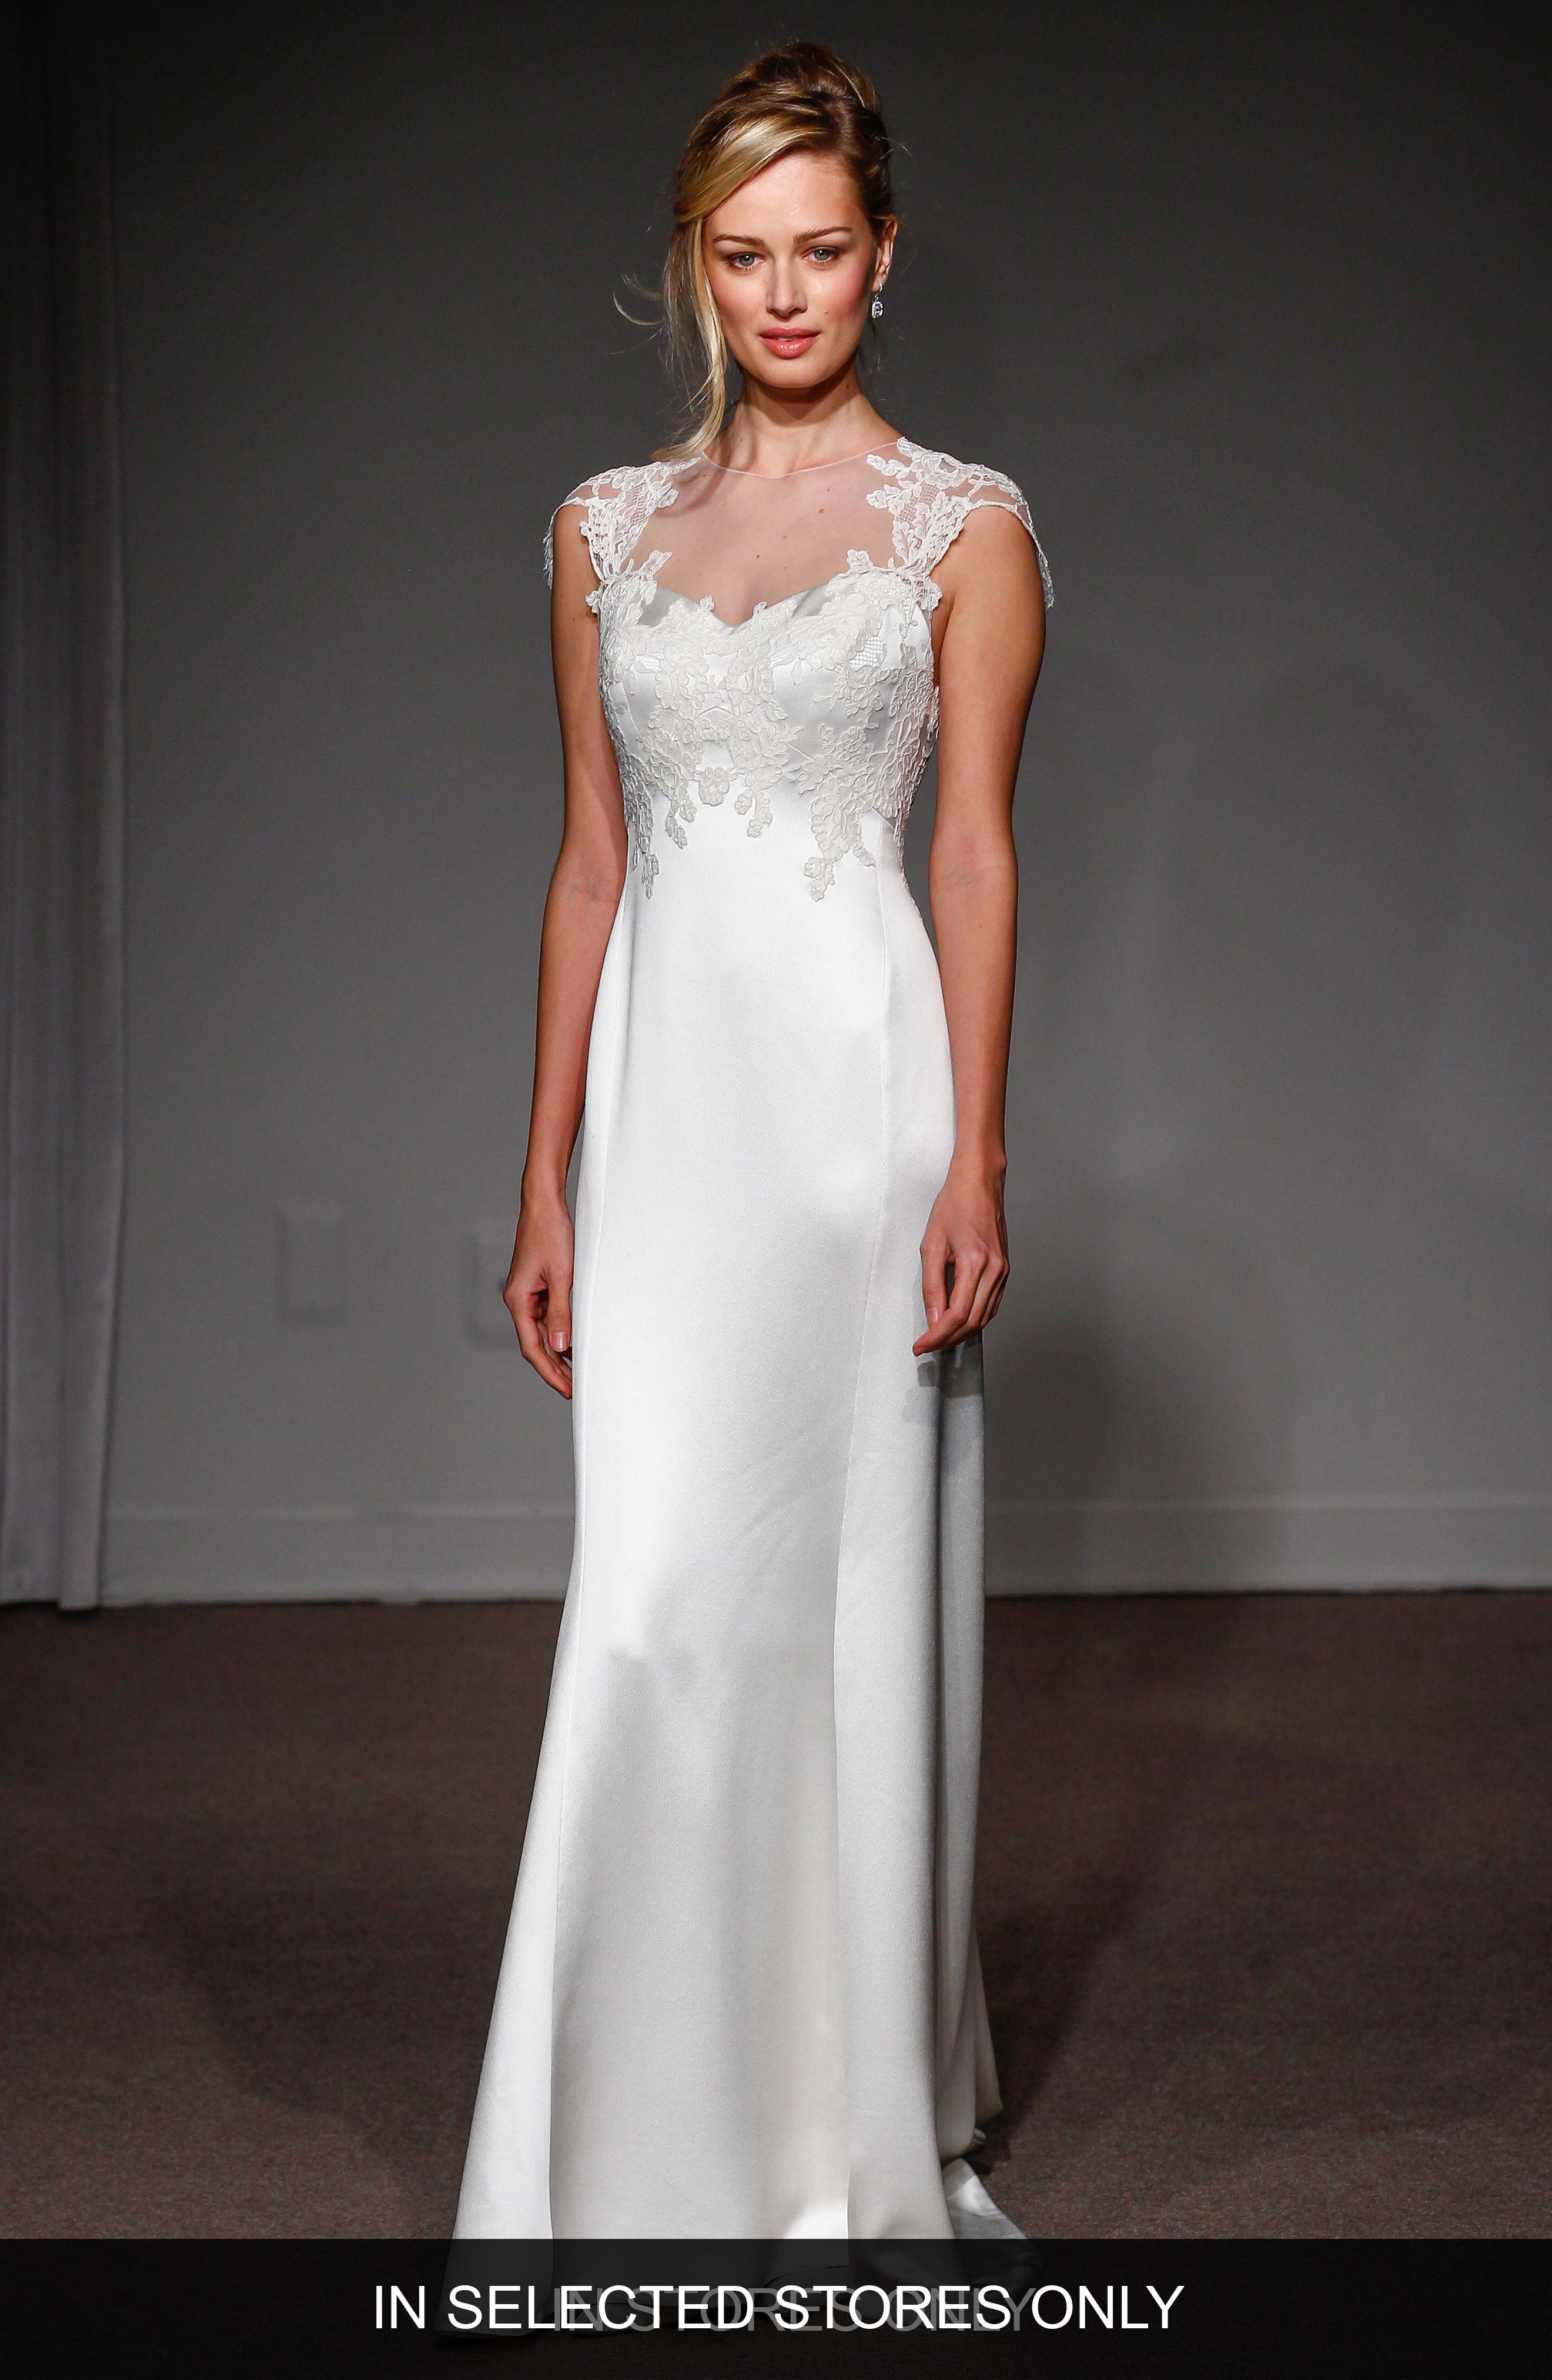 Alternate Image 1 Selected - Anna Maier Couture Grace Illusion Neck Lace & Satin A-Line Gown